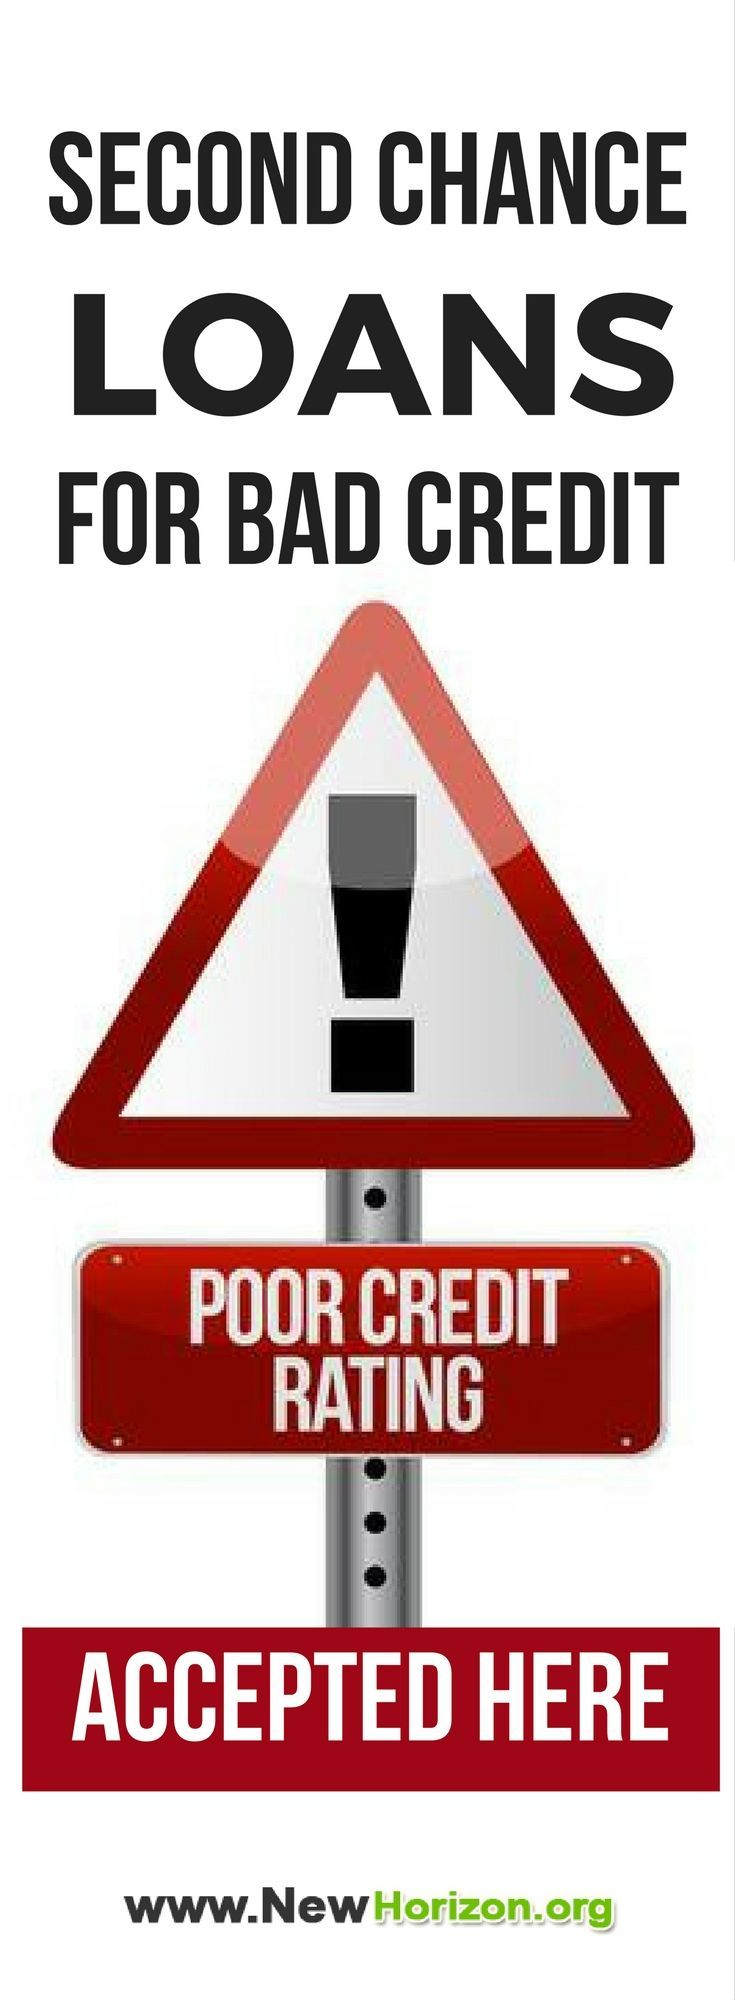 Second Chance Loans For Bad Credit Loans For Bad Credit Bad Credit Personal Loans